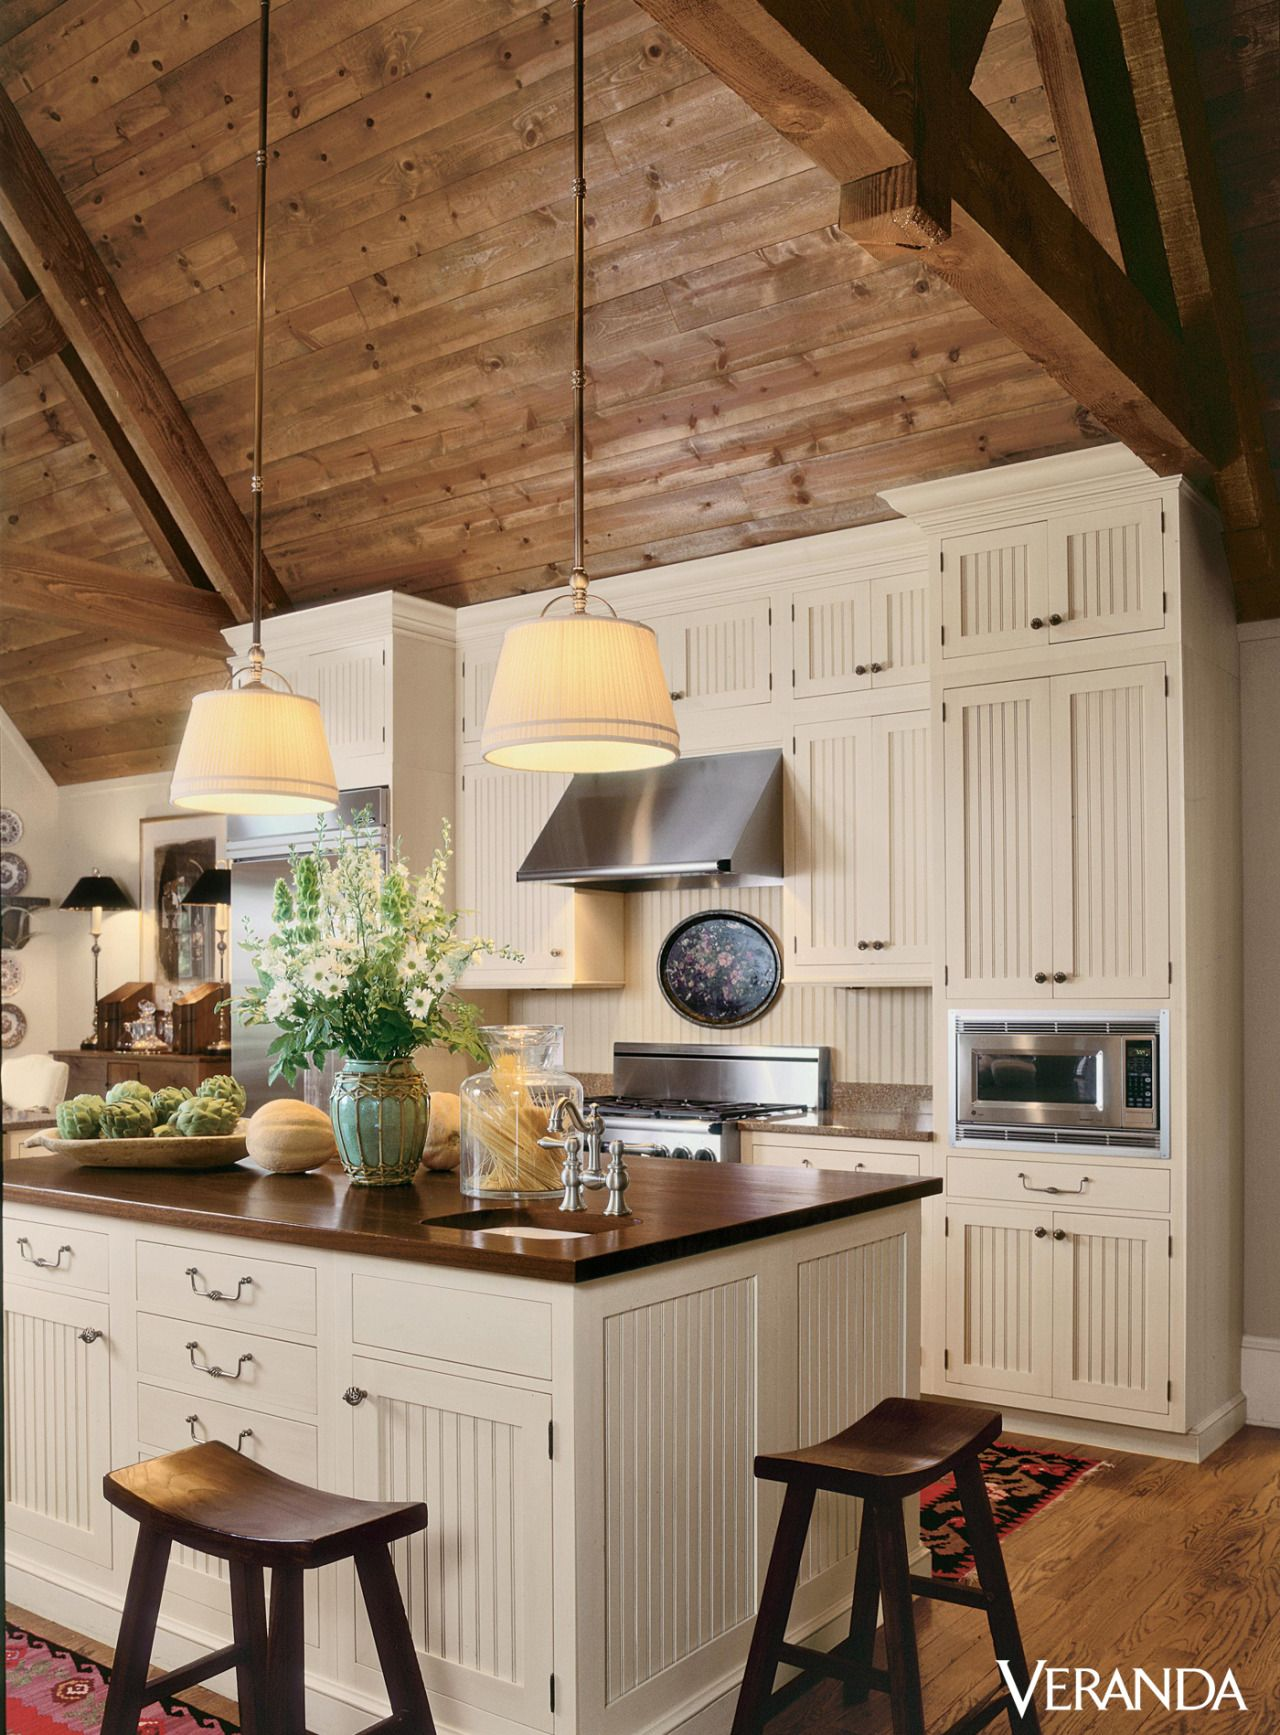 15 Rustic Kitchen Designs Ideas With Photo